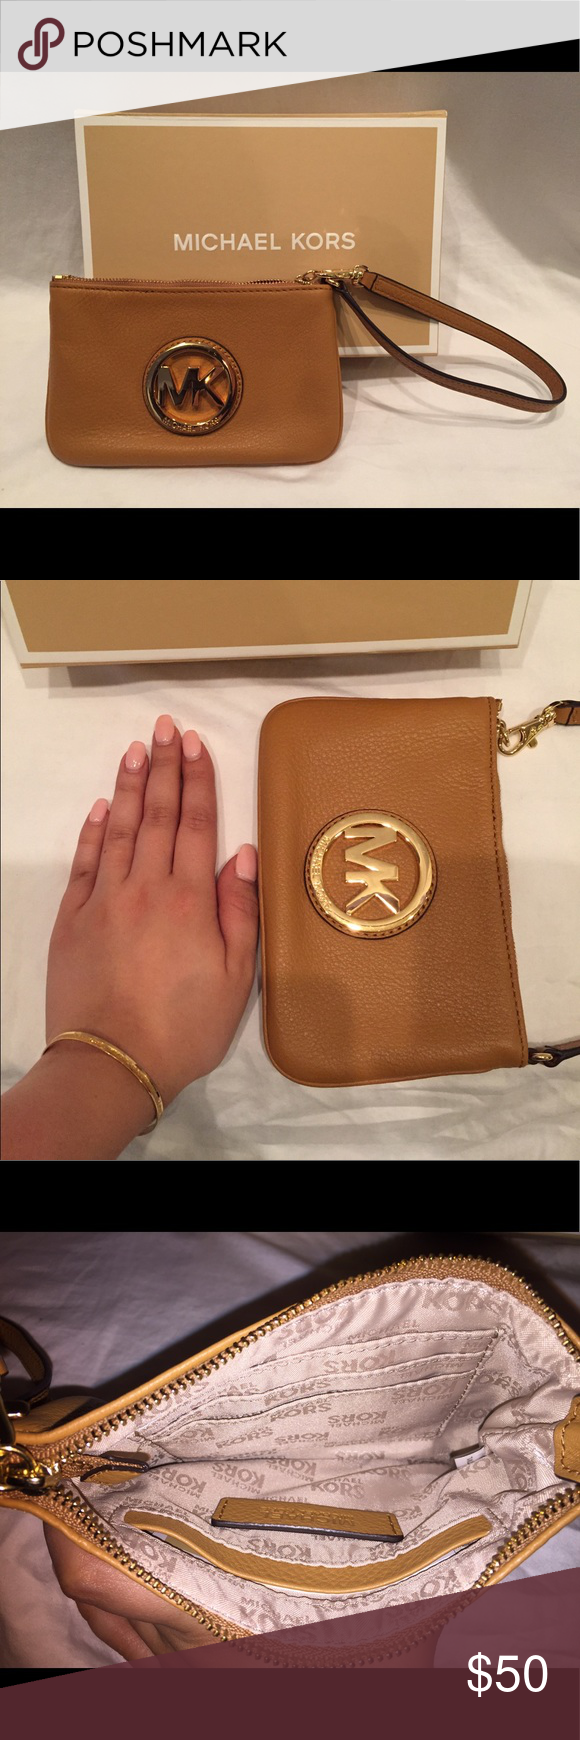 NWOT MICHAEL KORS WRISTLET NWOT MK wristlet in Luggage. Never been used, excellent condition! Box included. MICHAEL Michael Kors Bags Clutches & Wristlets